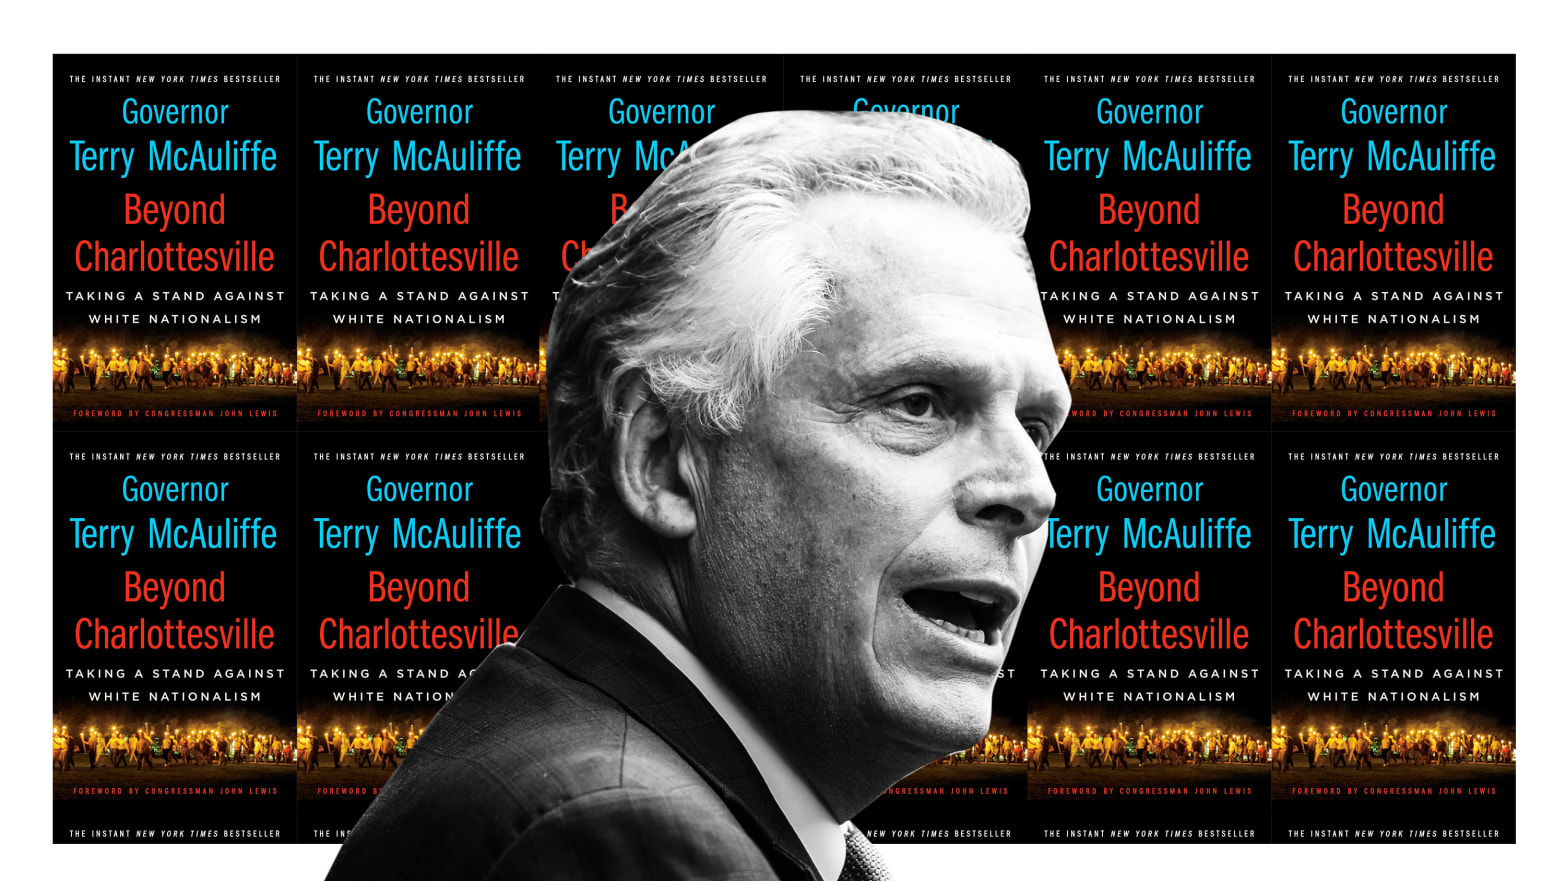 As Terry McAuliffe Looks Beyond Charlottesville, Objections Mount to His Depiction of Infamous Rally